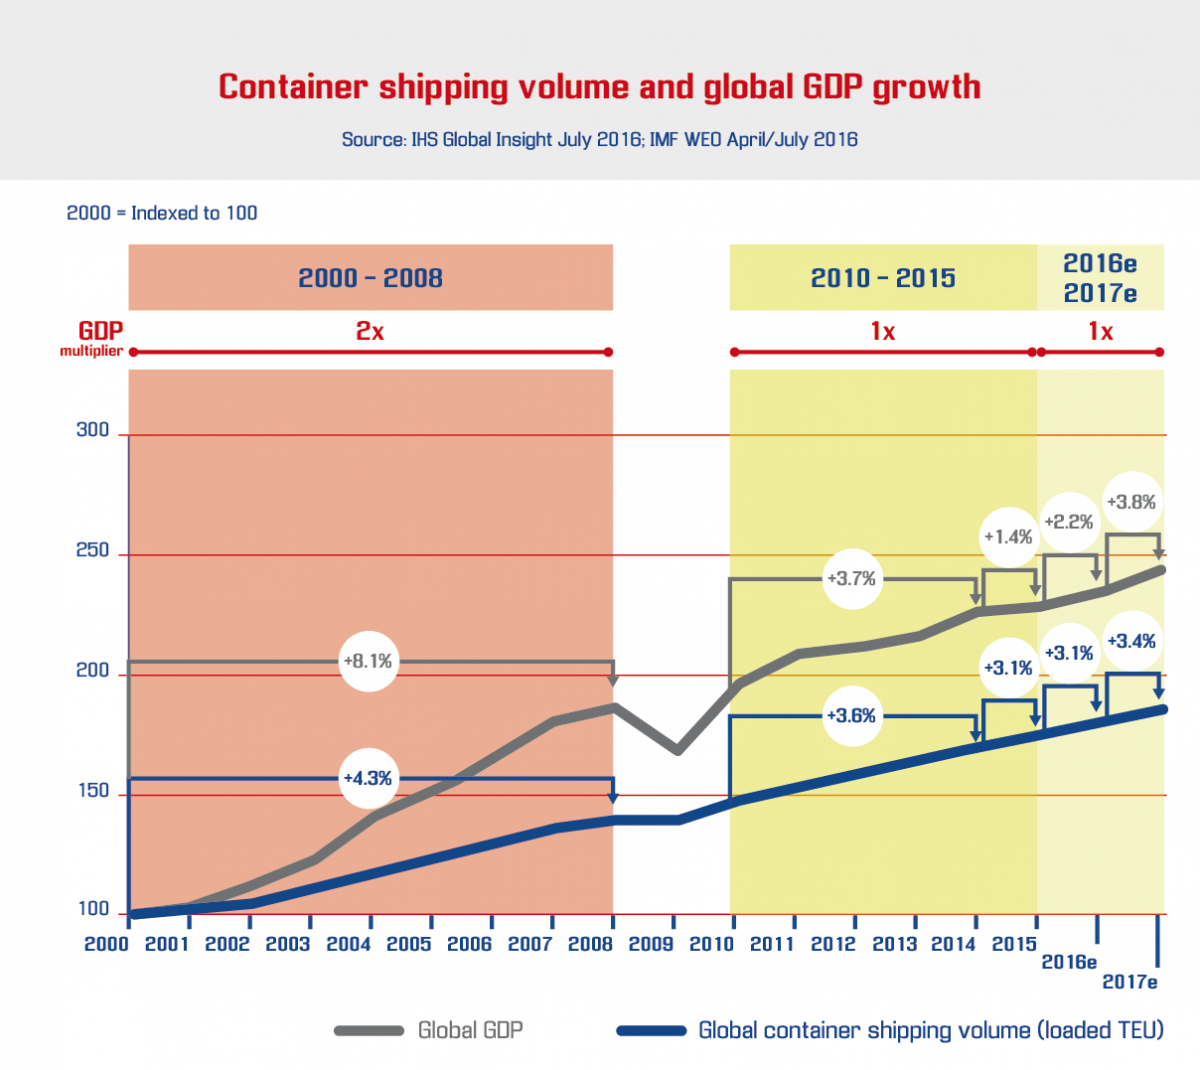 Container shipping volume and global GDP growth